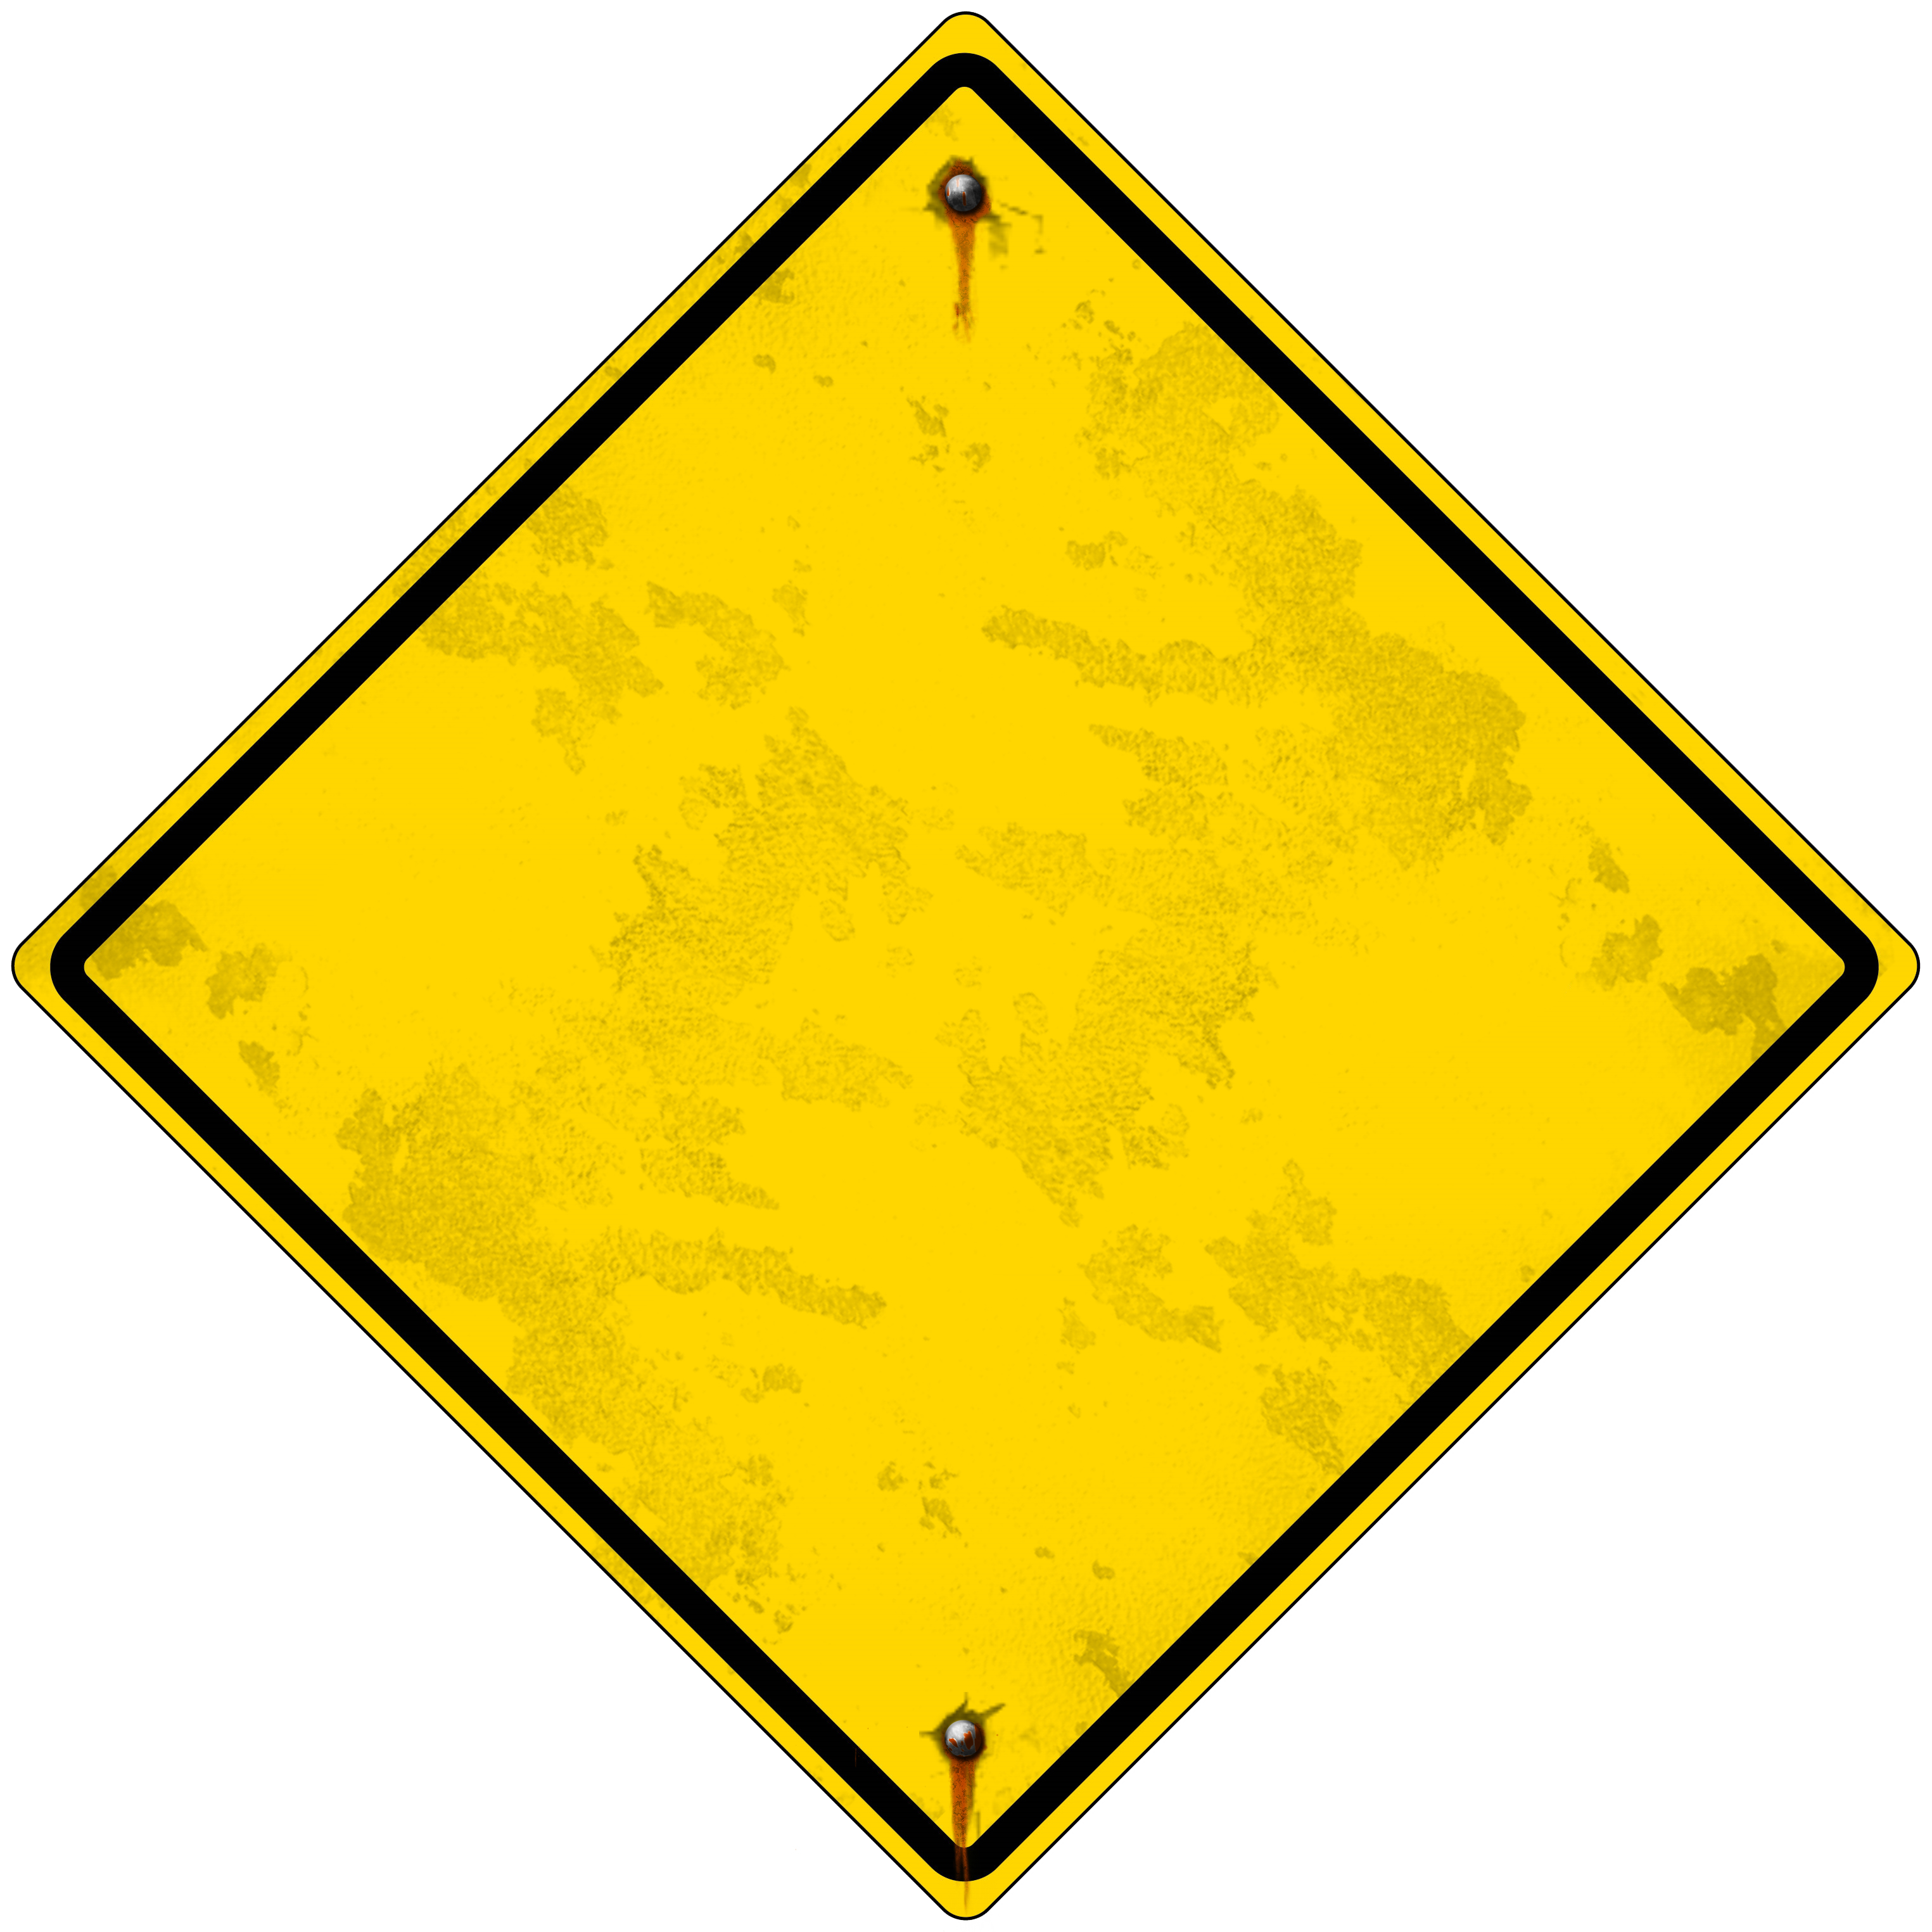 Road Sign Clipart - Clipart Kid